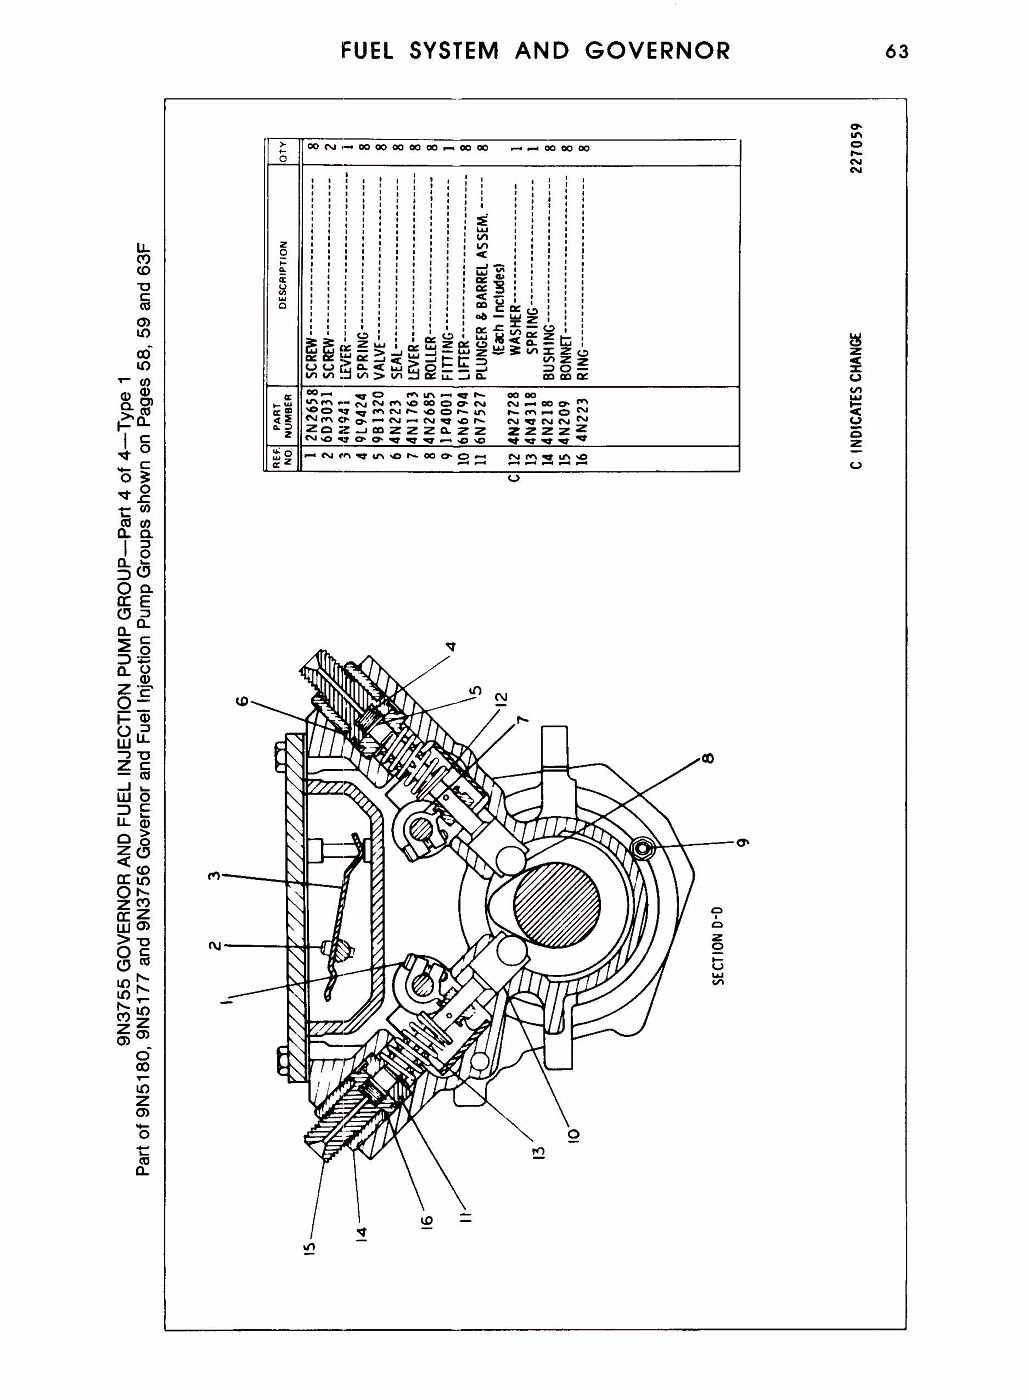 hight resolution of caterpillar 3208 engine workshop repair amp service manual clients bottom line digital contains troubleshooting tagged breakdown they contain everything